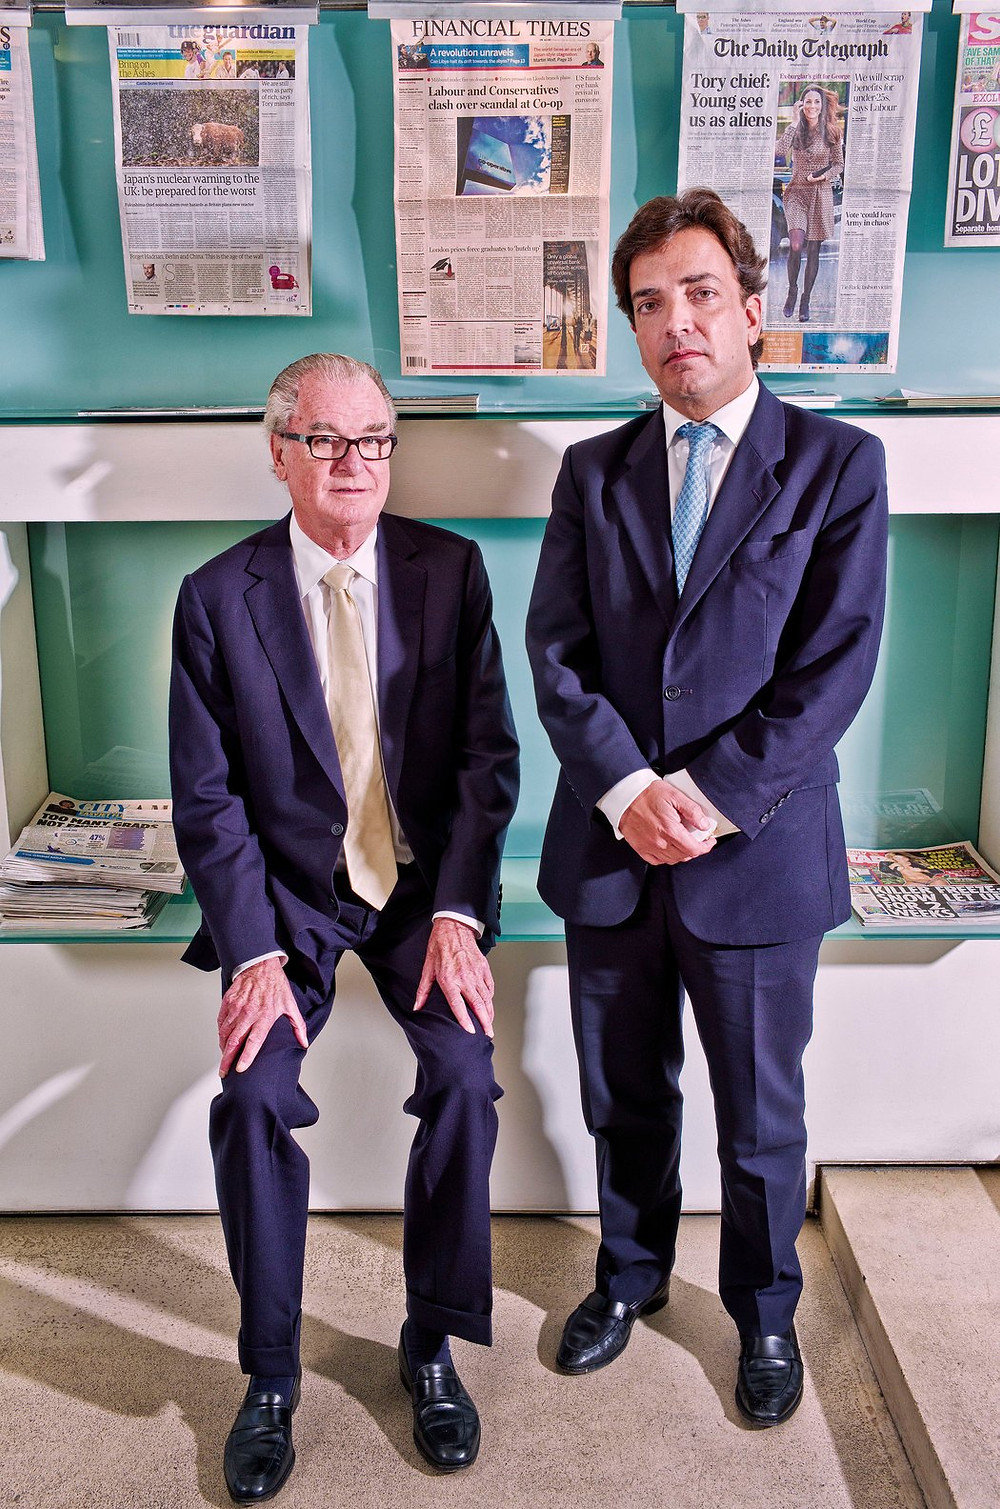 A vicious boardroom struggle unfolded at Bell Pottinger after its work for the Gupta brothers was revealed. It pitted a co-founder, Tim Bell, left, against James Henderson, who ran the firm in the years before it closed. Their conflict centered on the perennials of business potboilers, namely power and money. Credit Sarah Lee/Eyevine